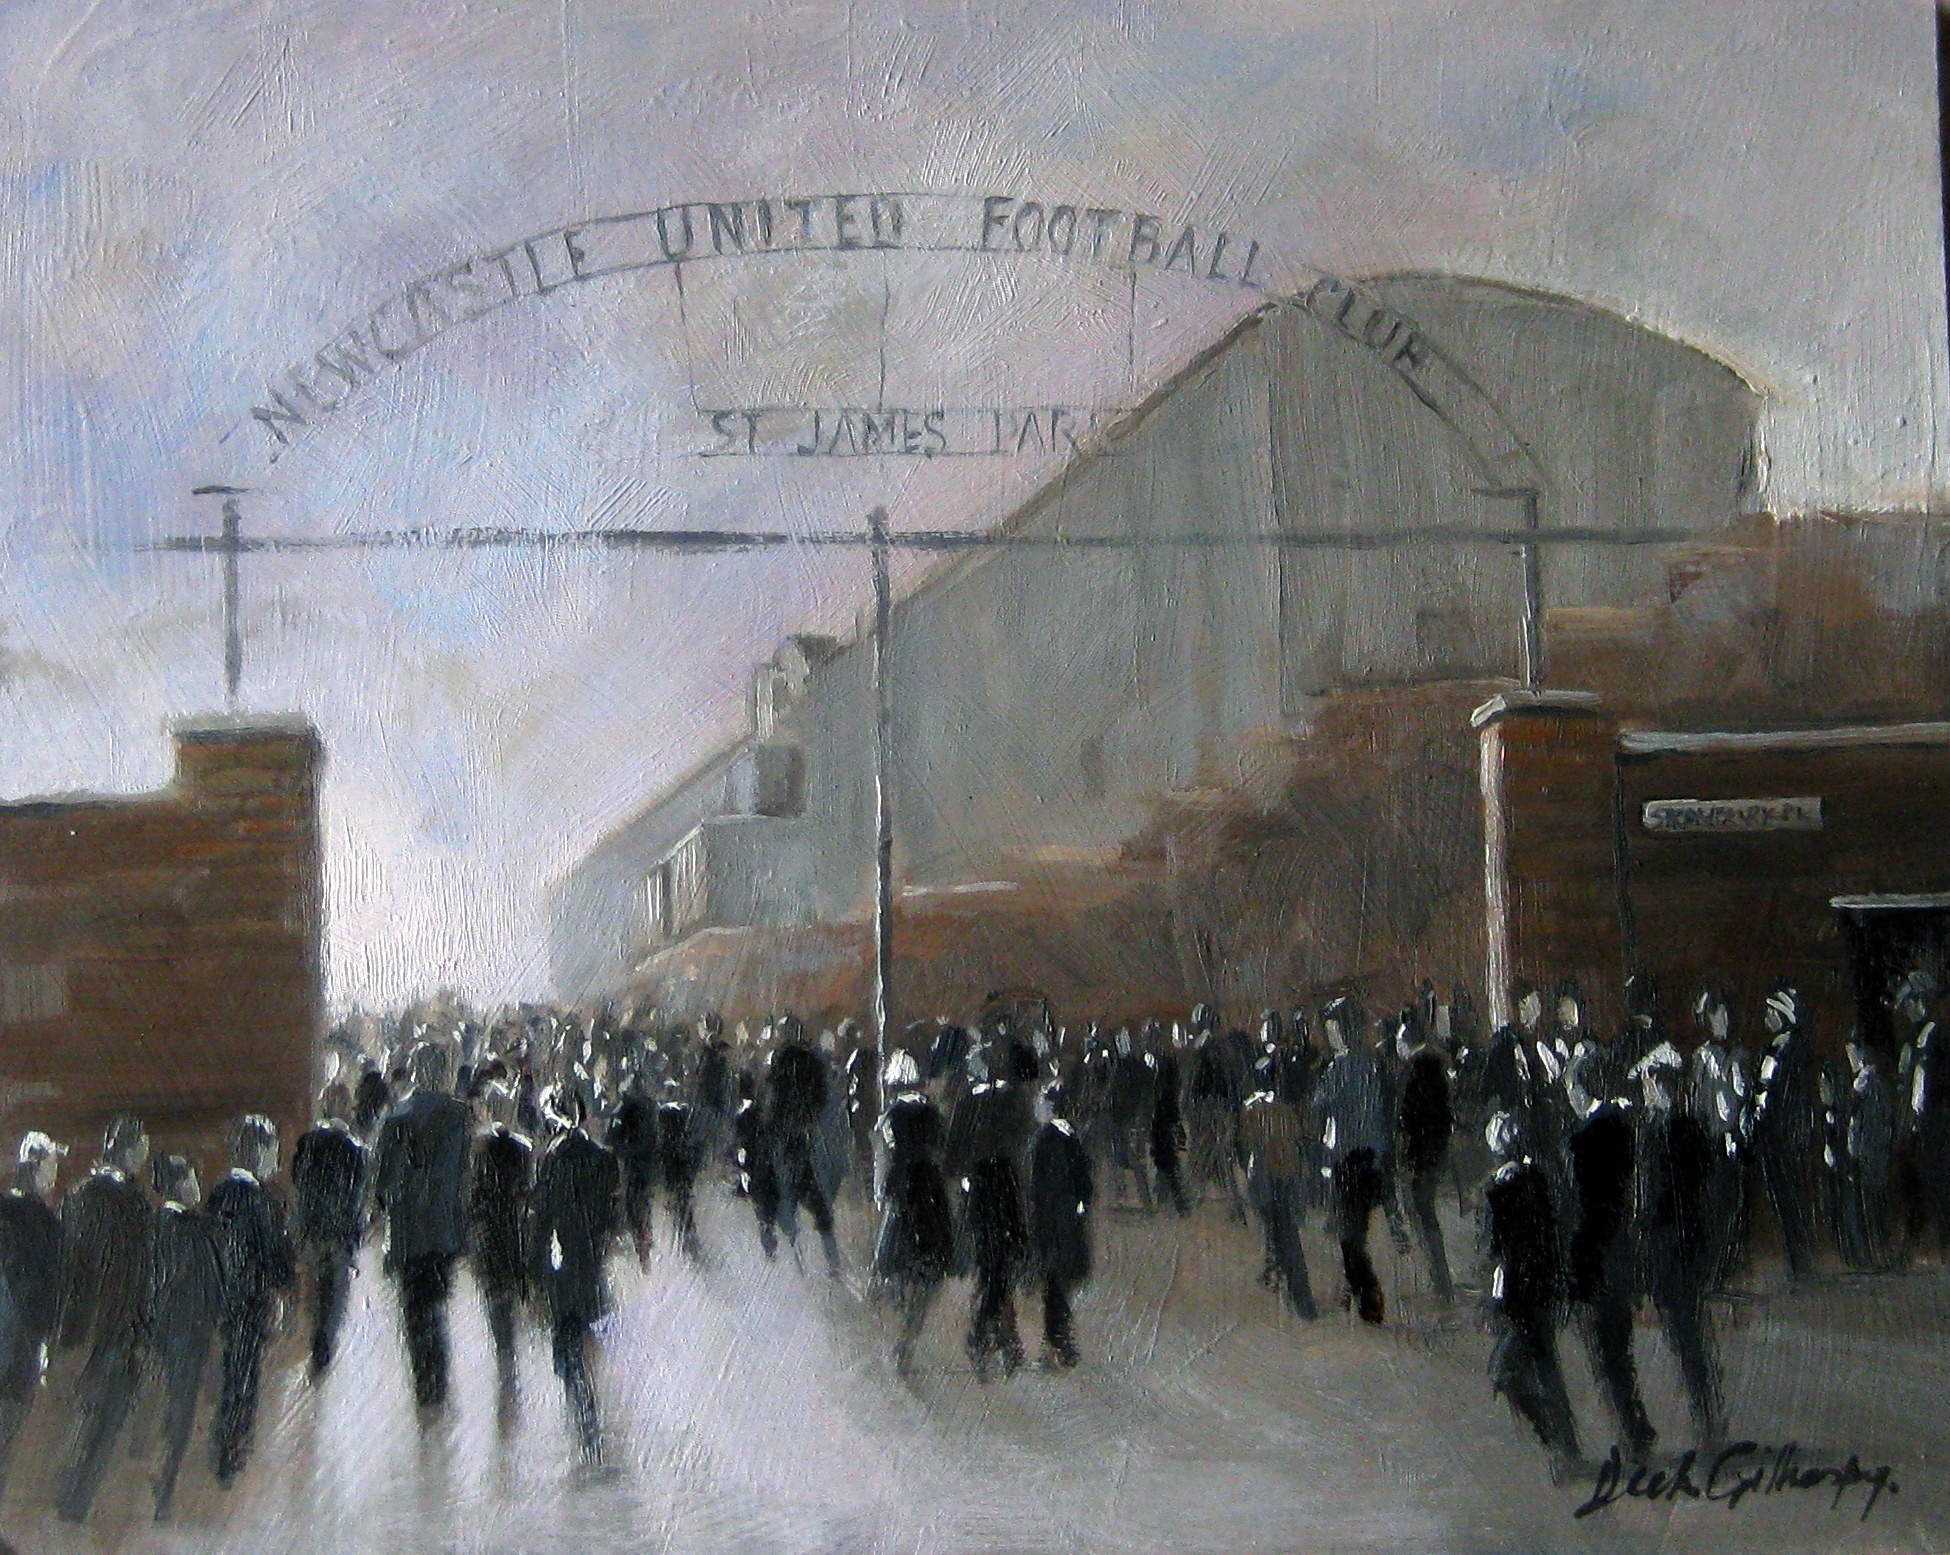 Old SJP,  original painting by Dick Gilhespy